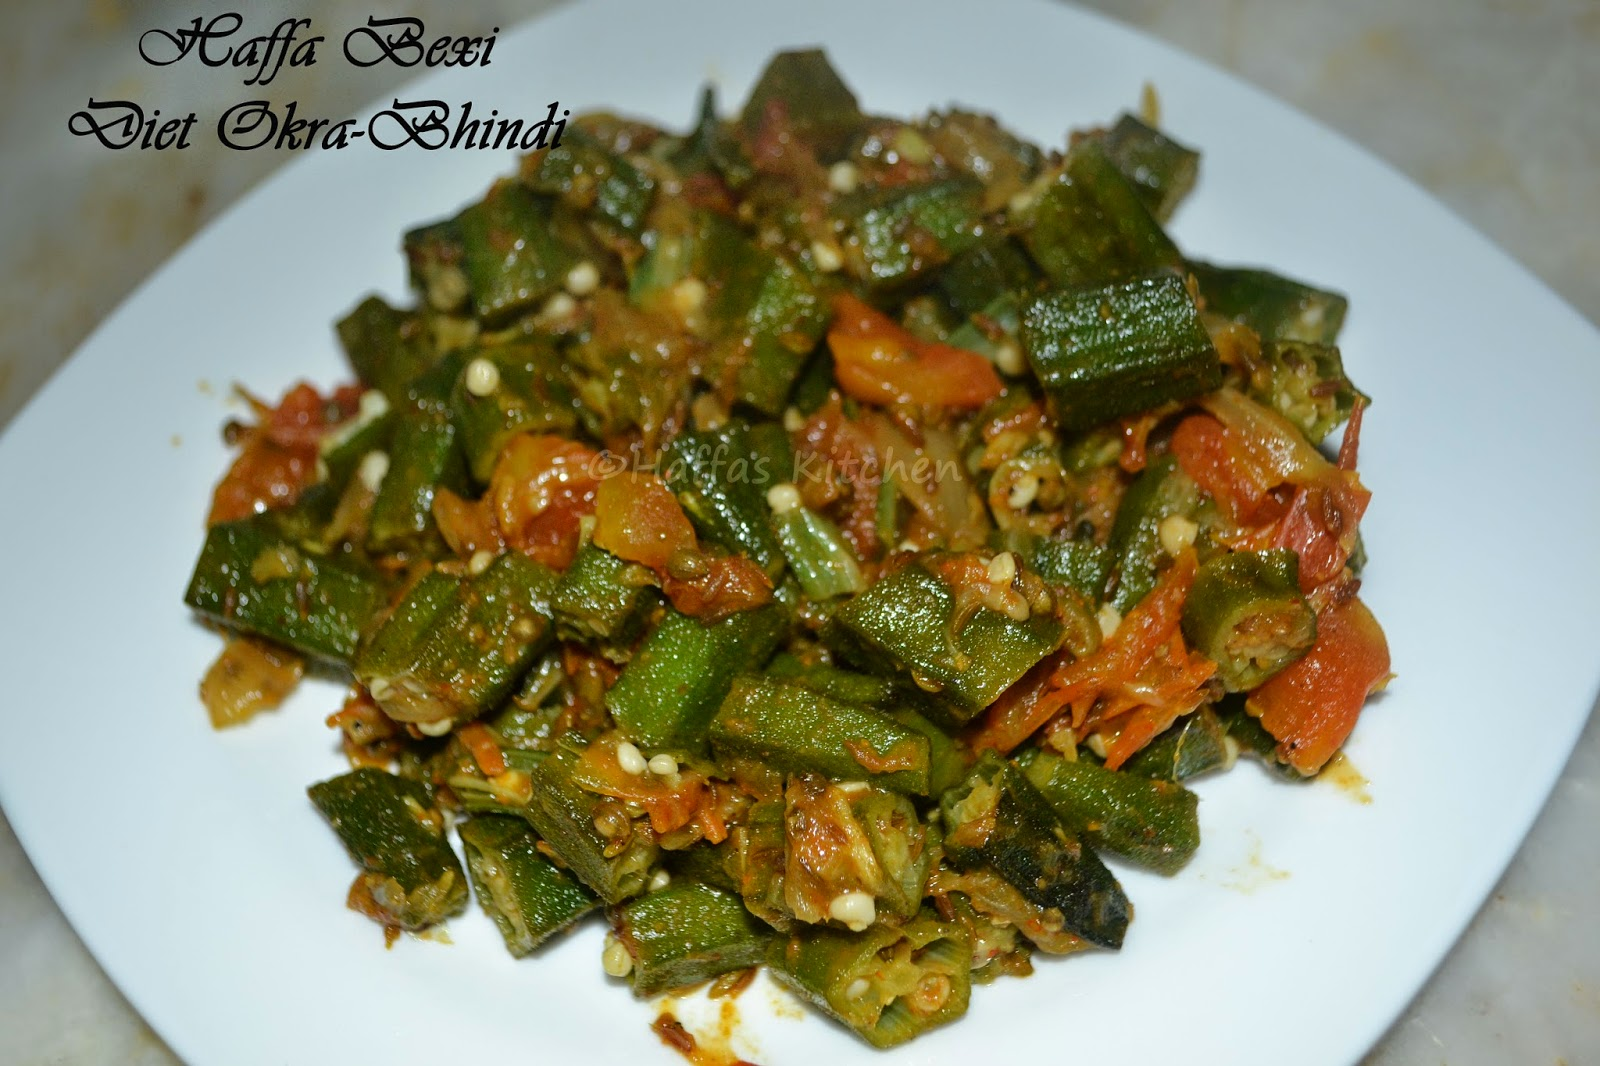 Eating Okra on a Low-Carb Diet